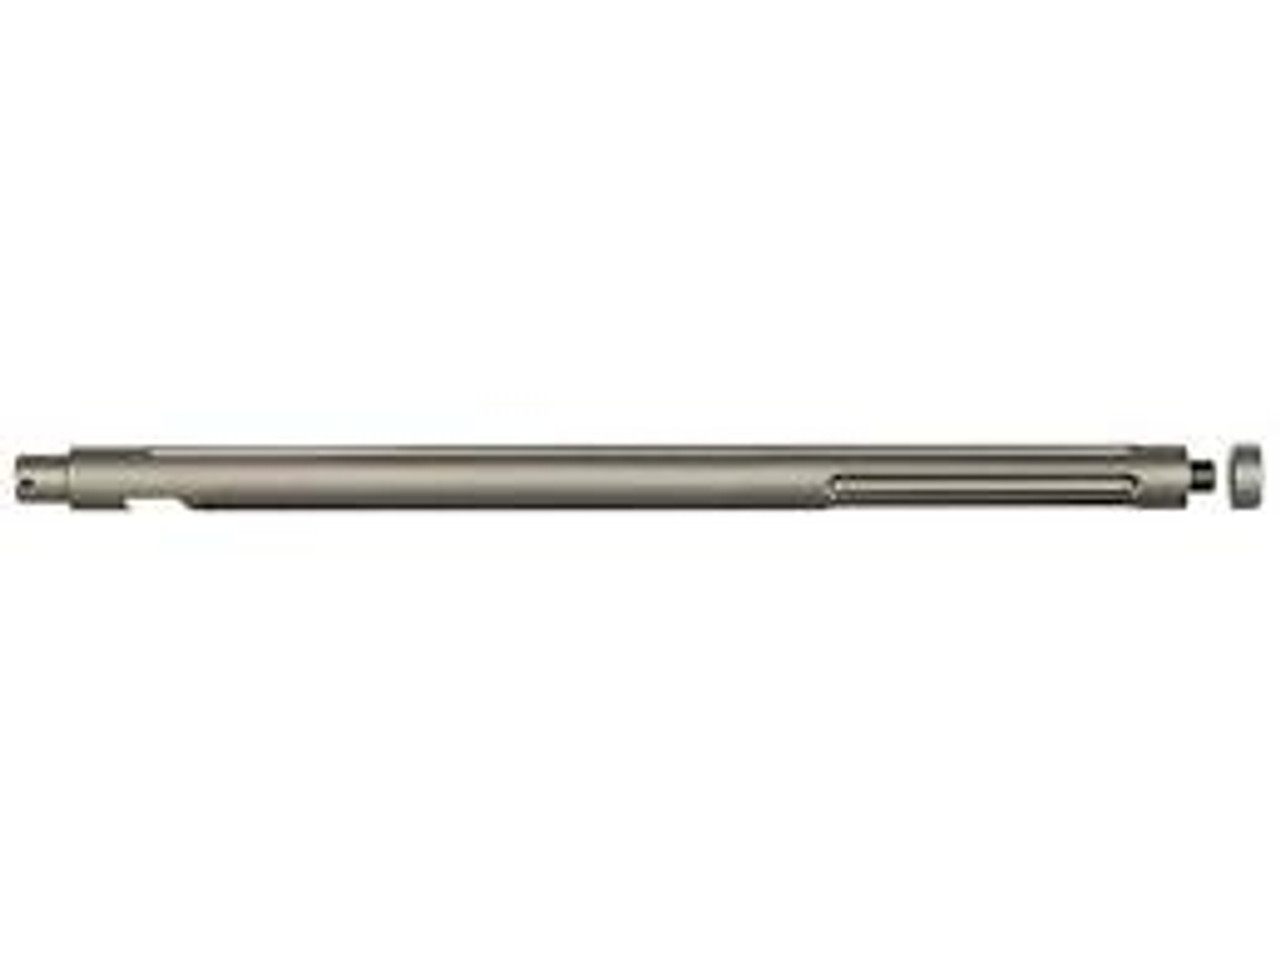 Tactical Solutions - 10/22 Lightweight Barrel - OD Green, Threaded